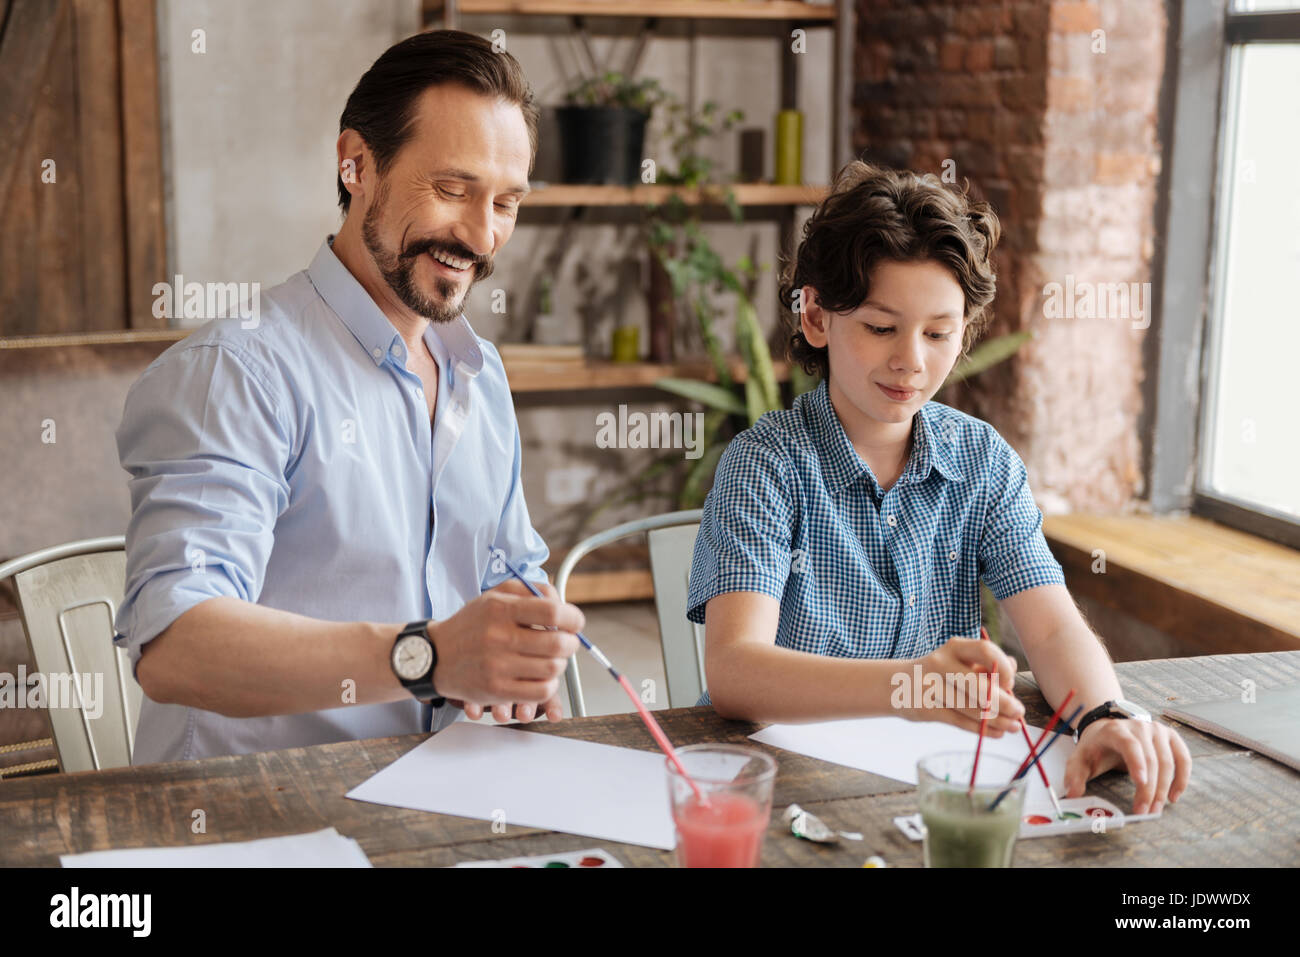 Happy father and his son focused on painting - Stock Image